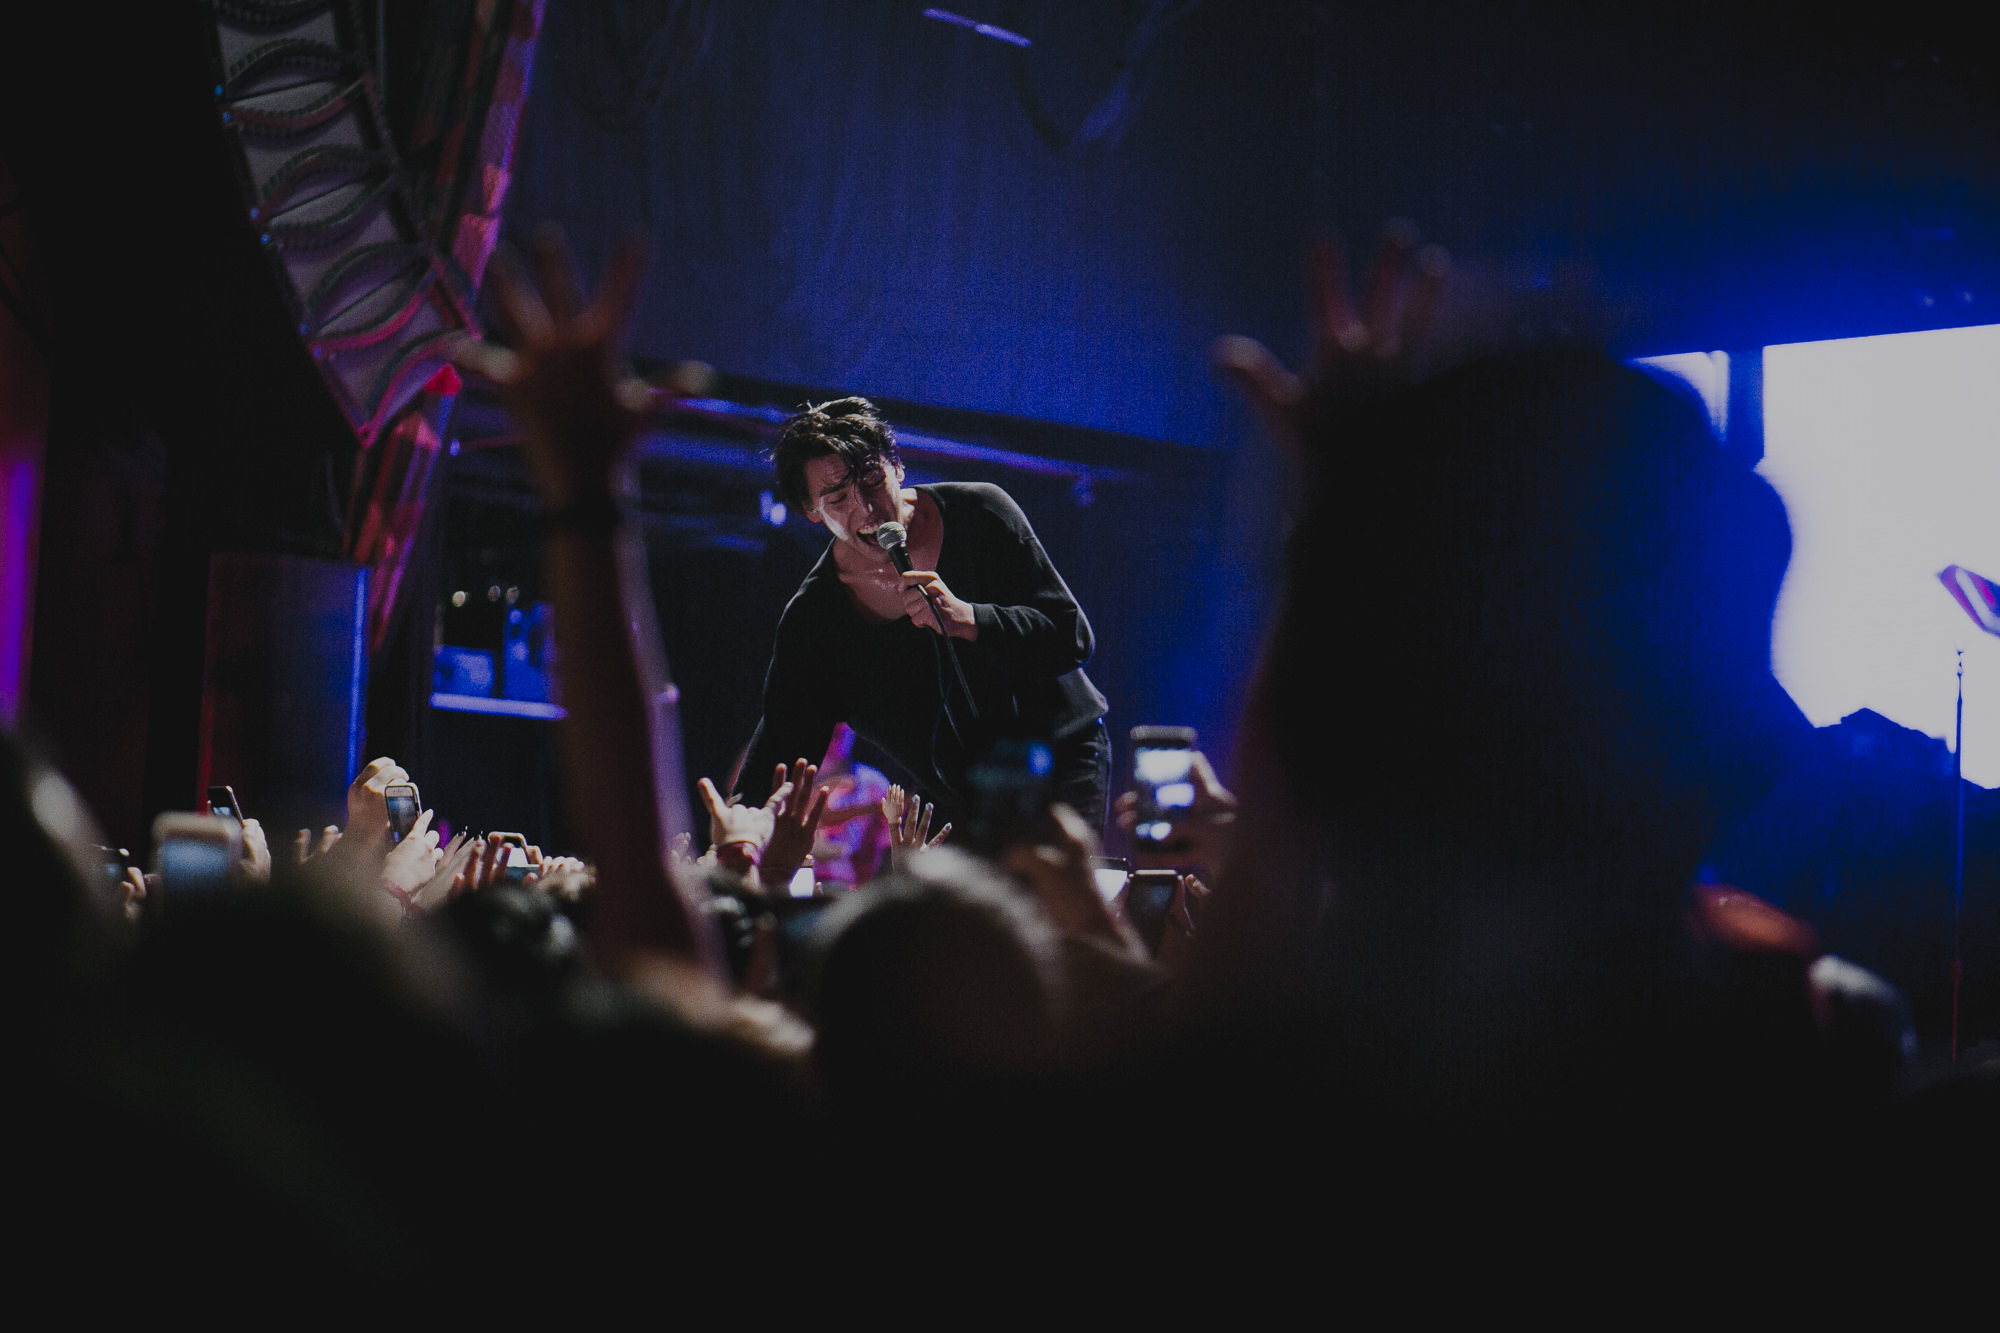 badsuns-houseofblues-sandiego-shotbyfrancisco-francsicosoon-vagrant-theflood2015-0549.jpg